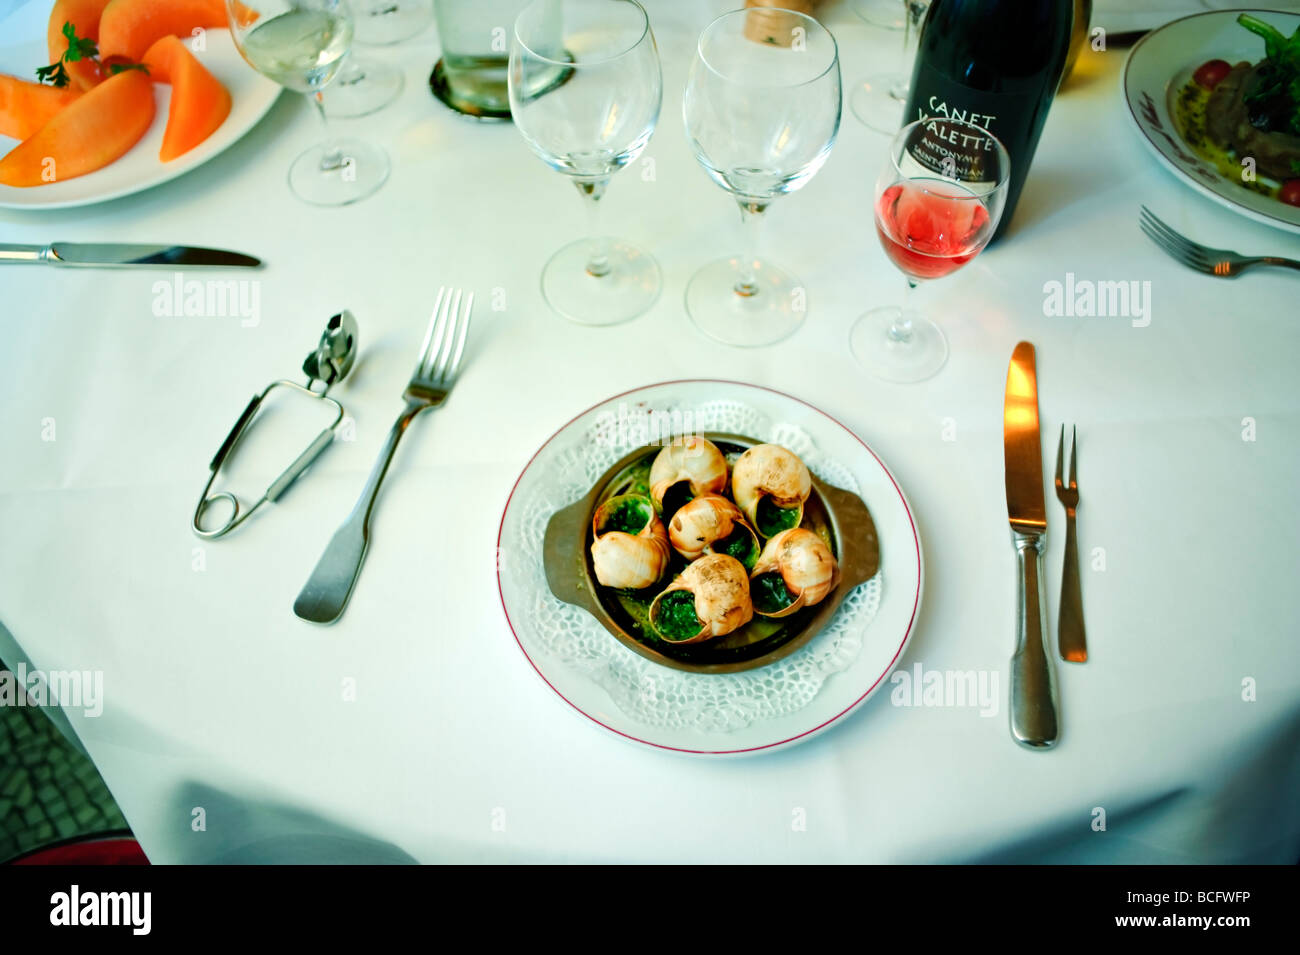 Paris France, 'French Brasserie Restaurant' 'Le Grand Colbert' Detail 'French Food' 'Food - Stock Image